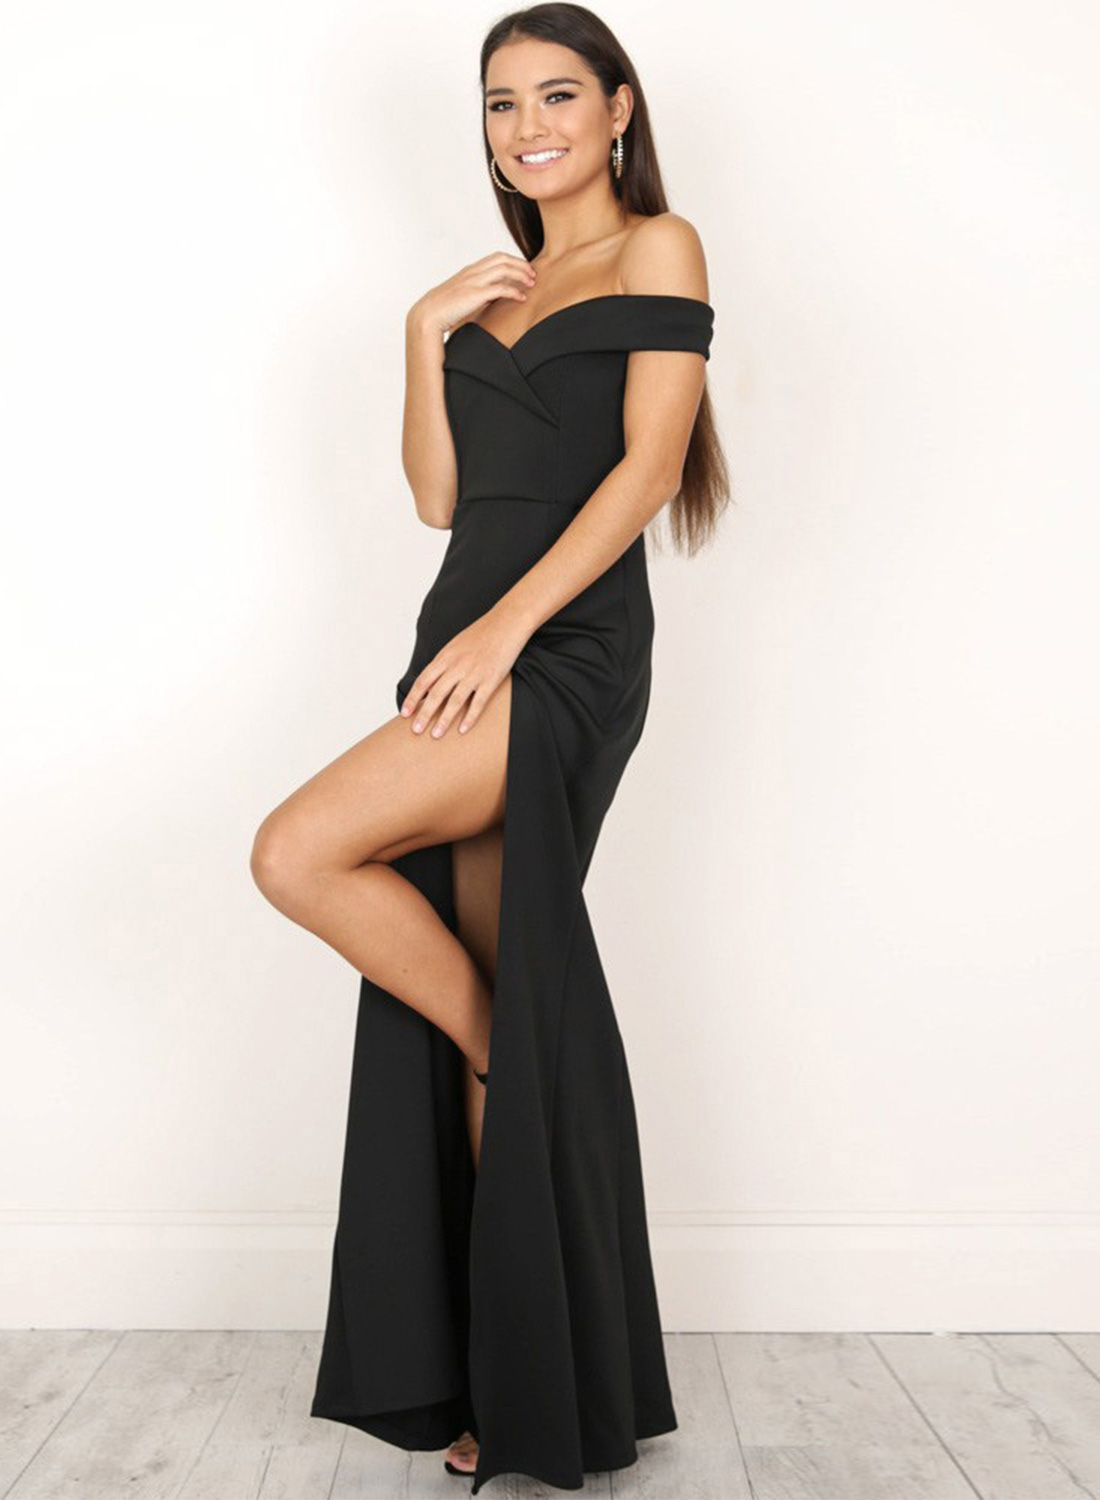 c50194184c45 Off Shoulder High Slit Prom Dress STYLESIMO.com. Loading zoom